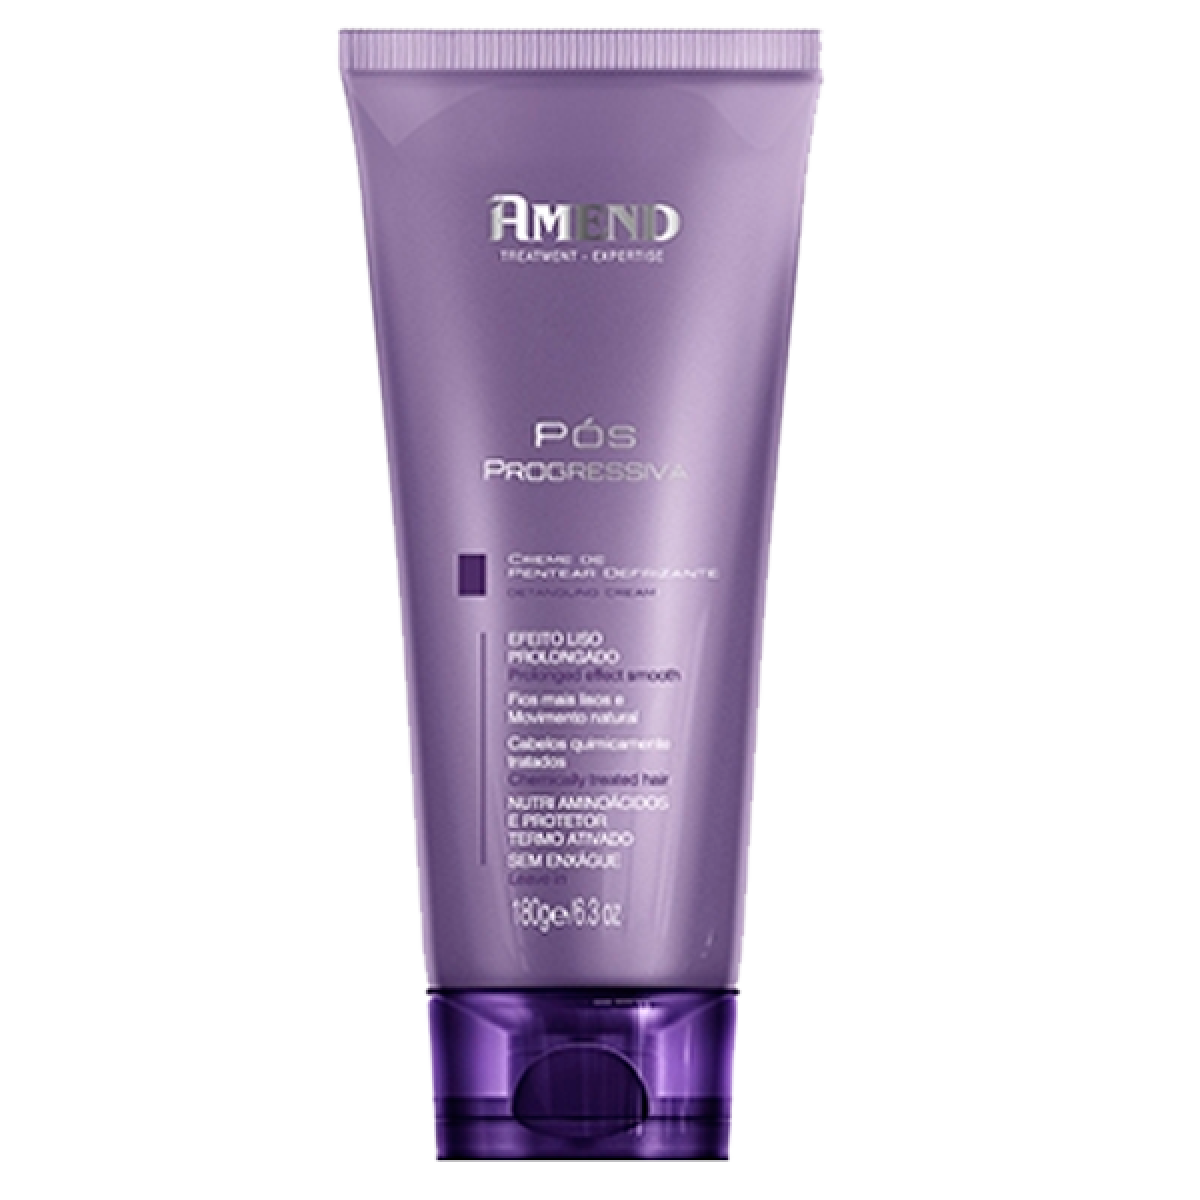 Kit Amend Pós Progressiva Shampoo  250ml + Condicionador 250ml + Leave In 180g + Mascara 300g